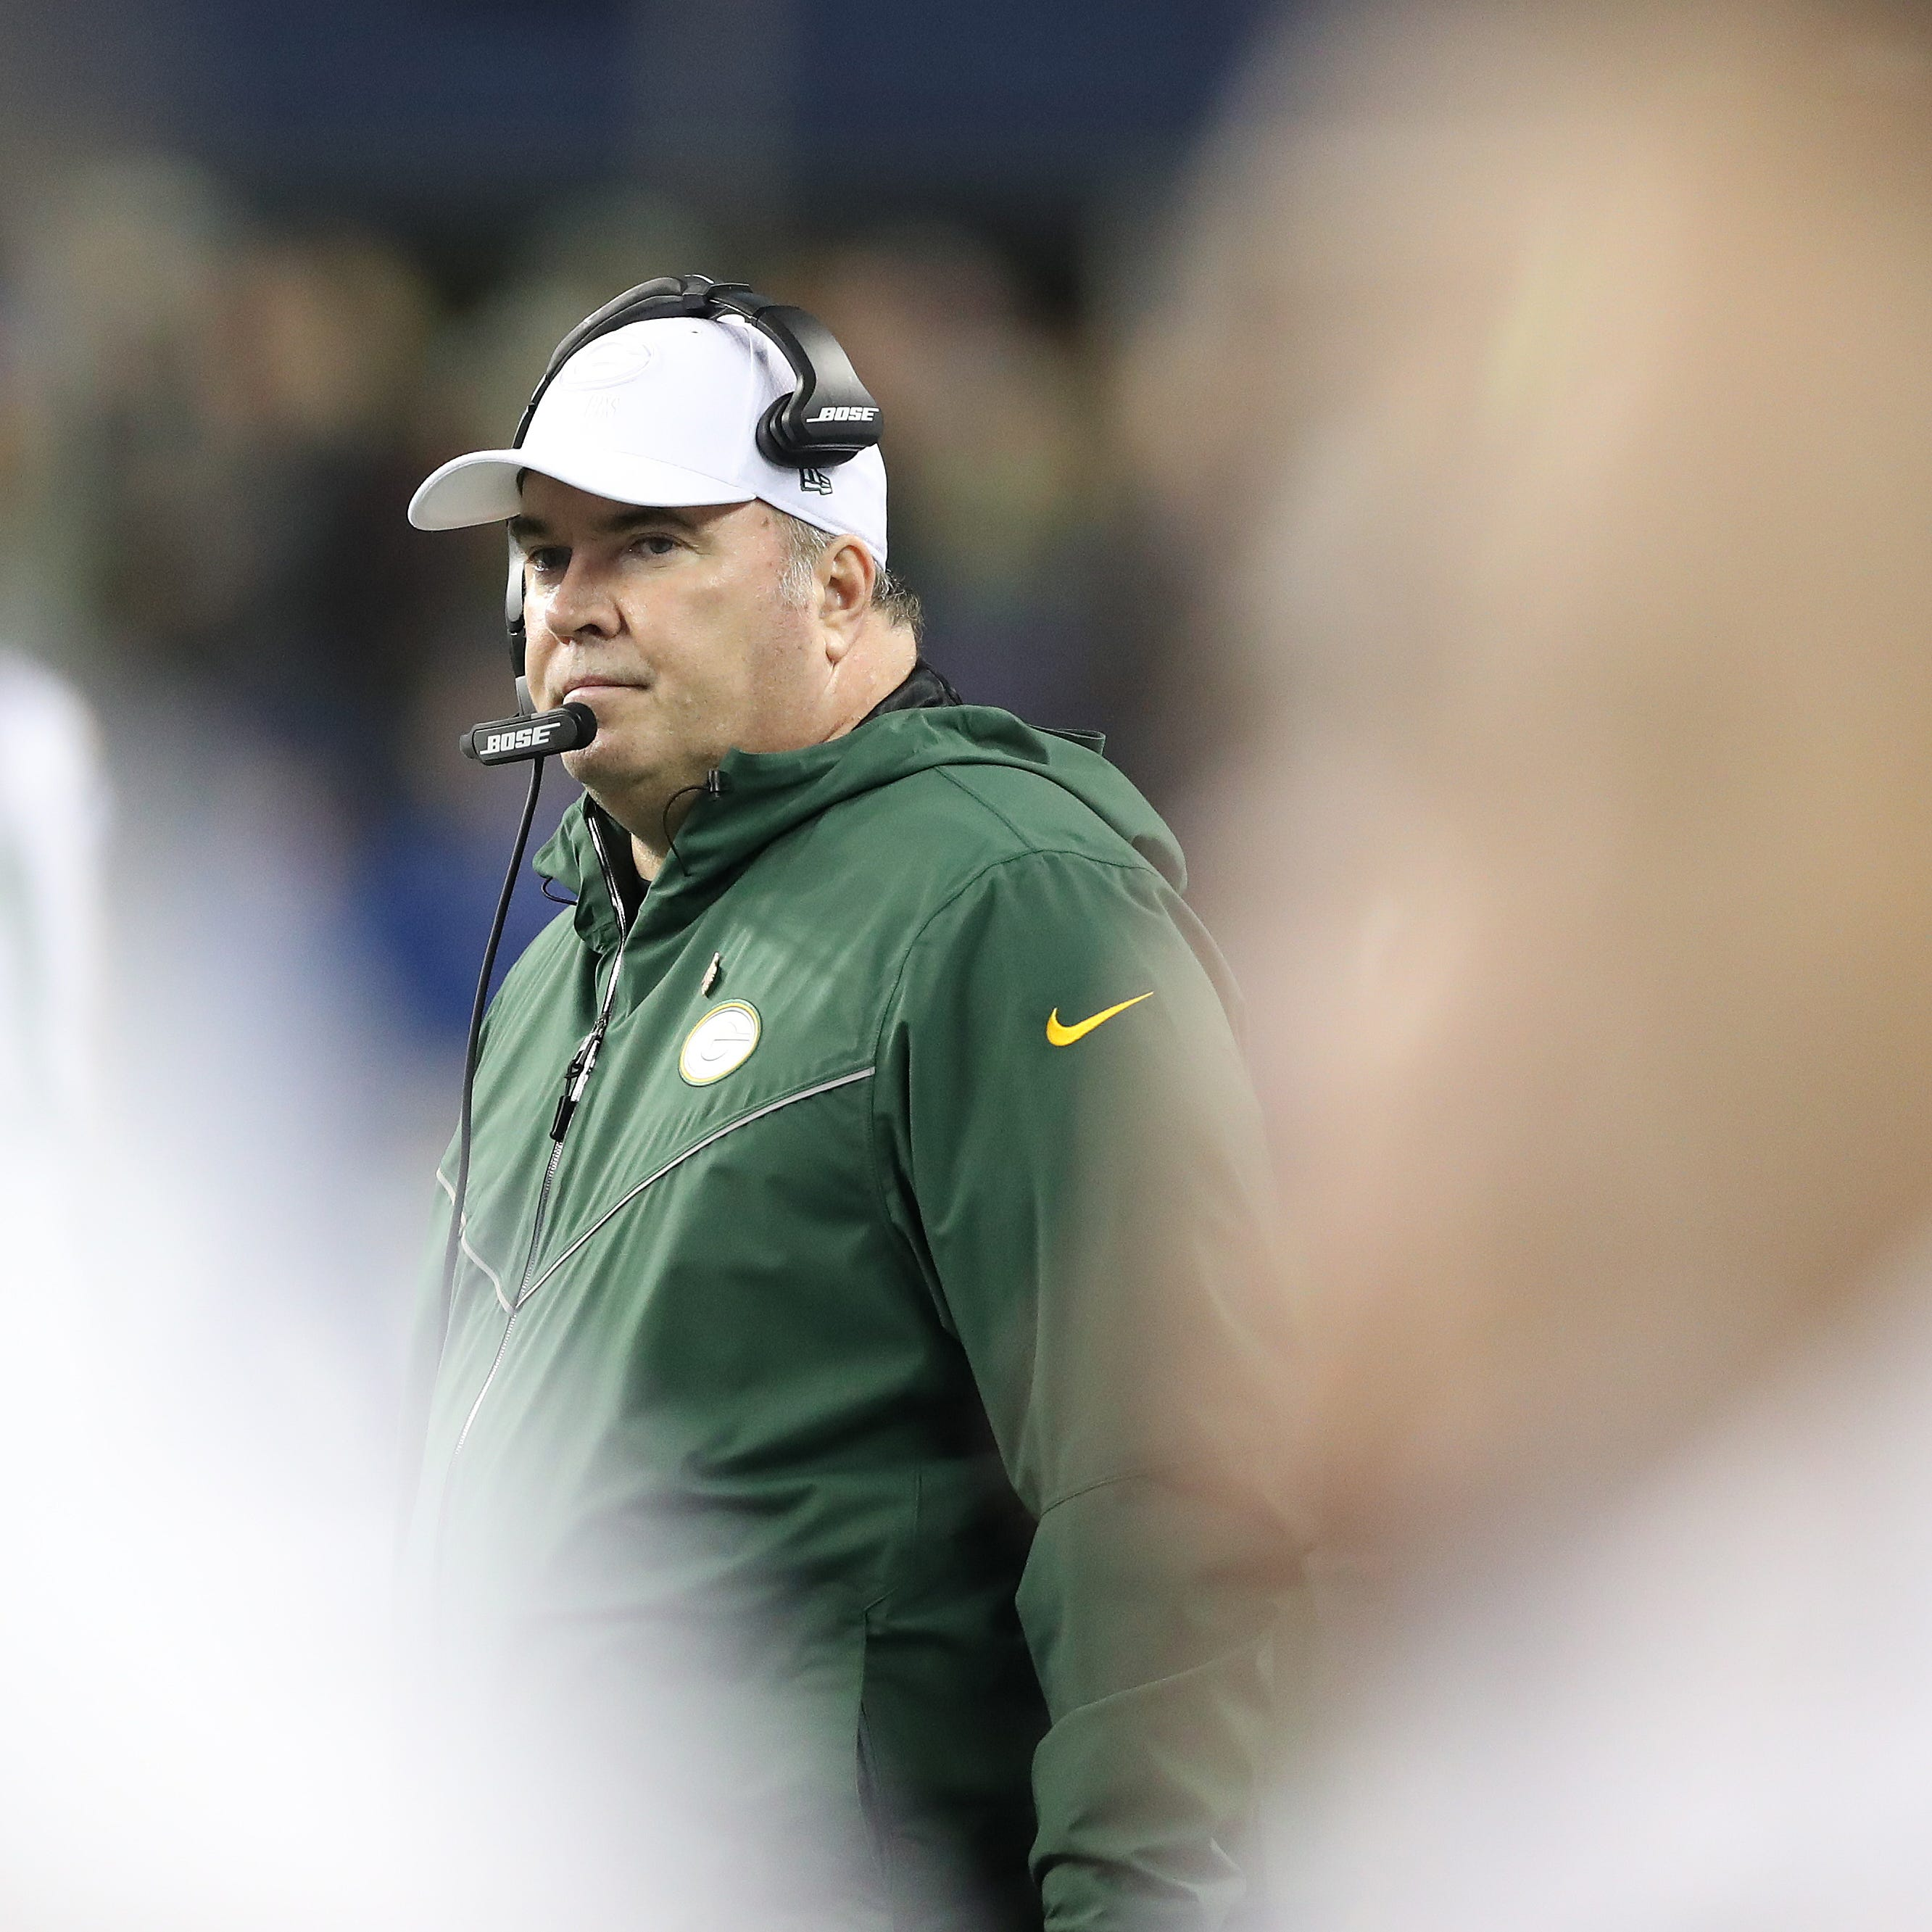 Packers coach Mike McCarthy downplays questions about job security